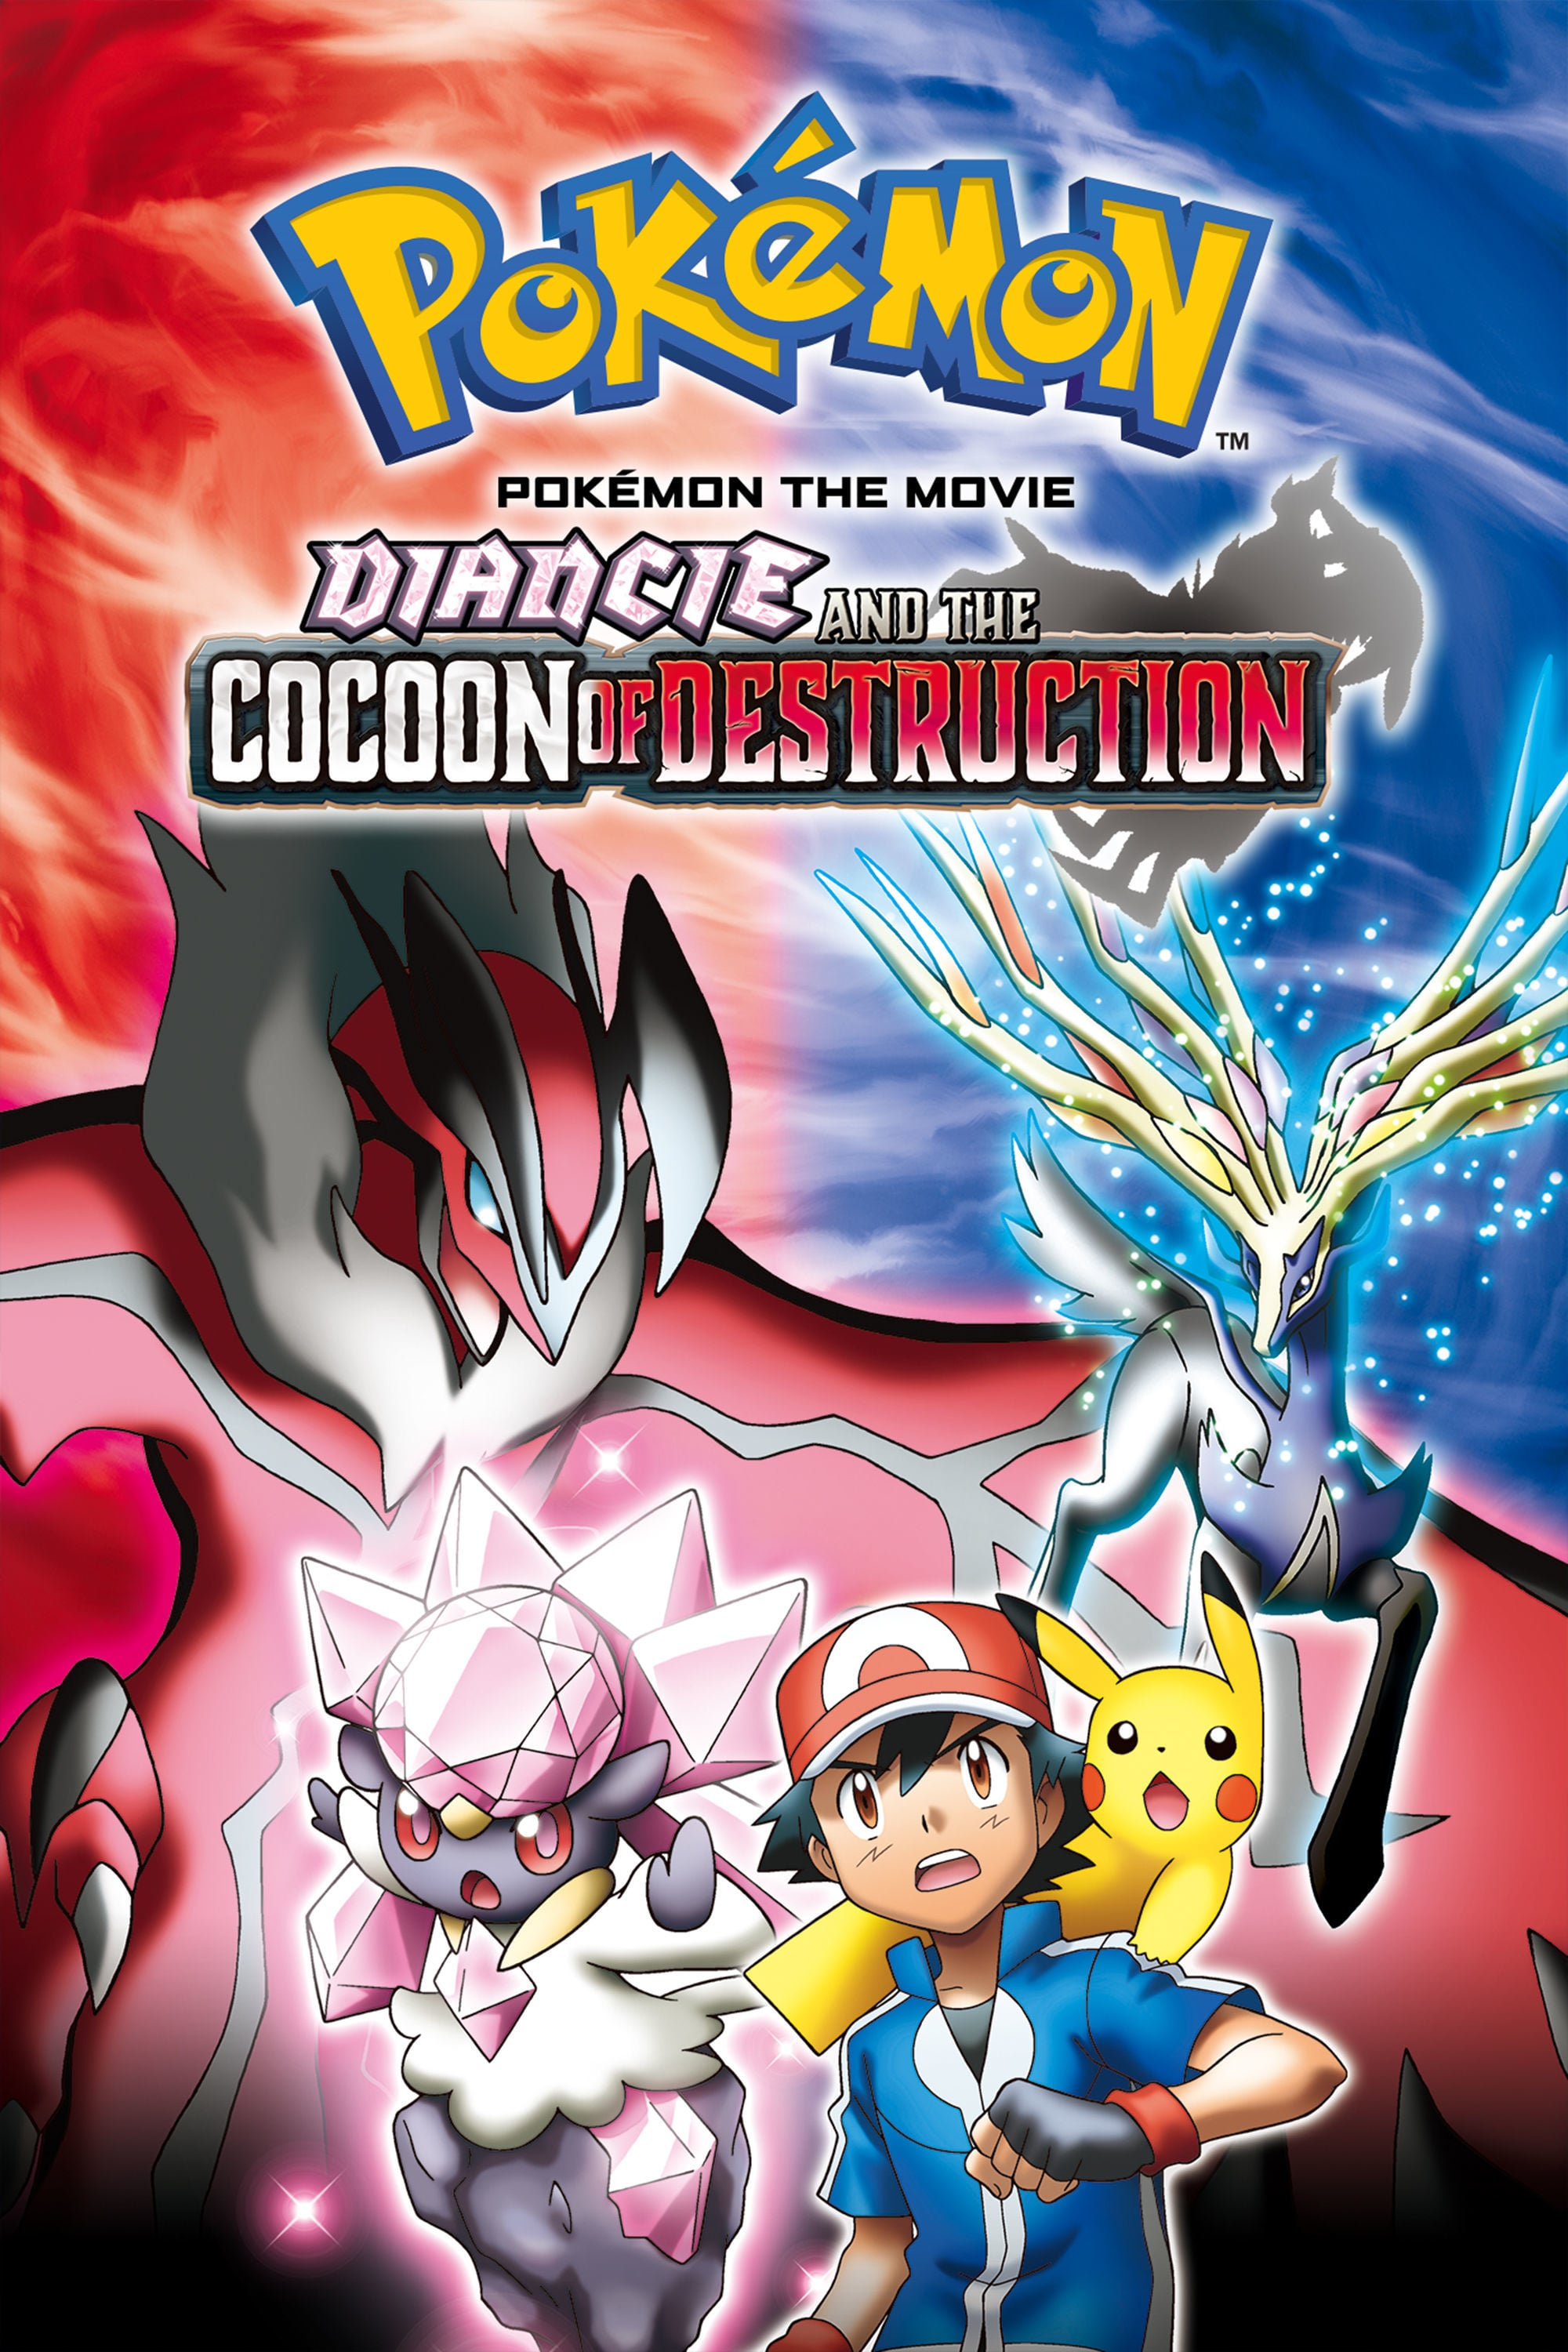 Movie: Diancie and the Cocoon of Destruction